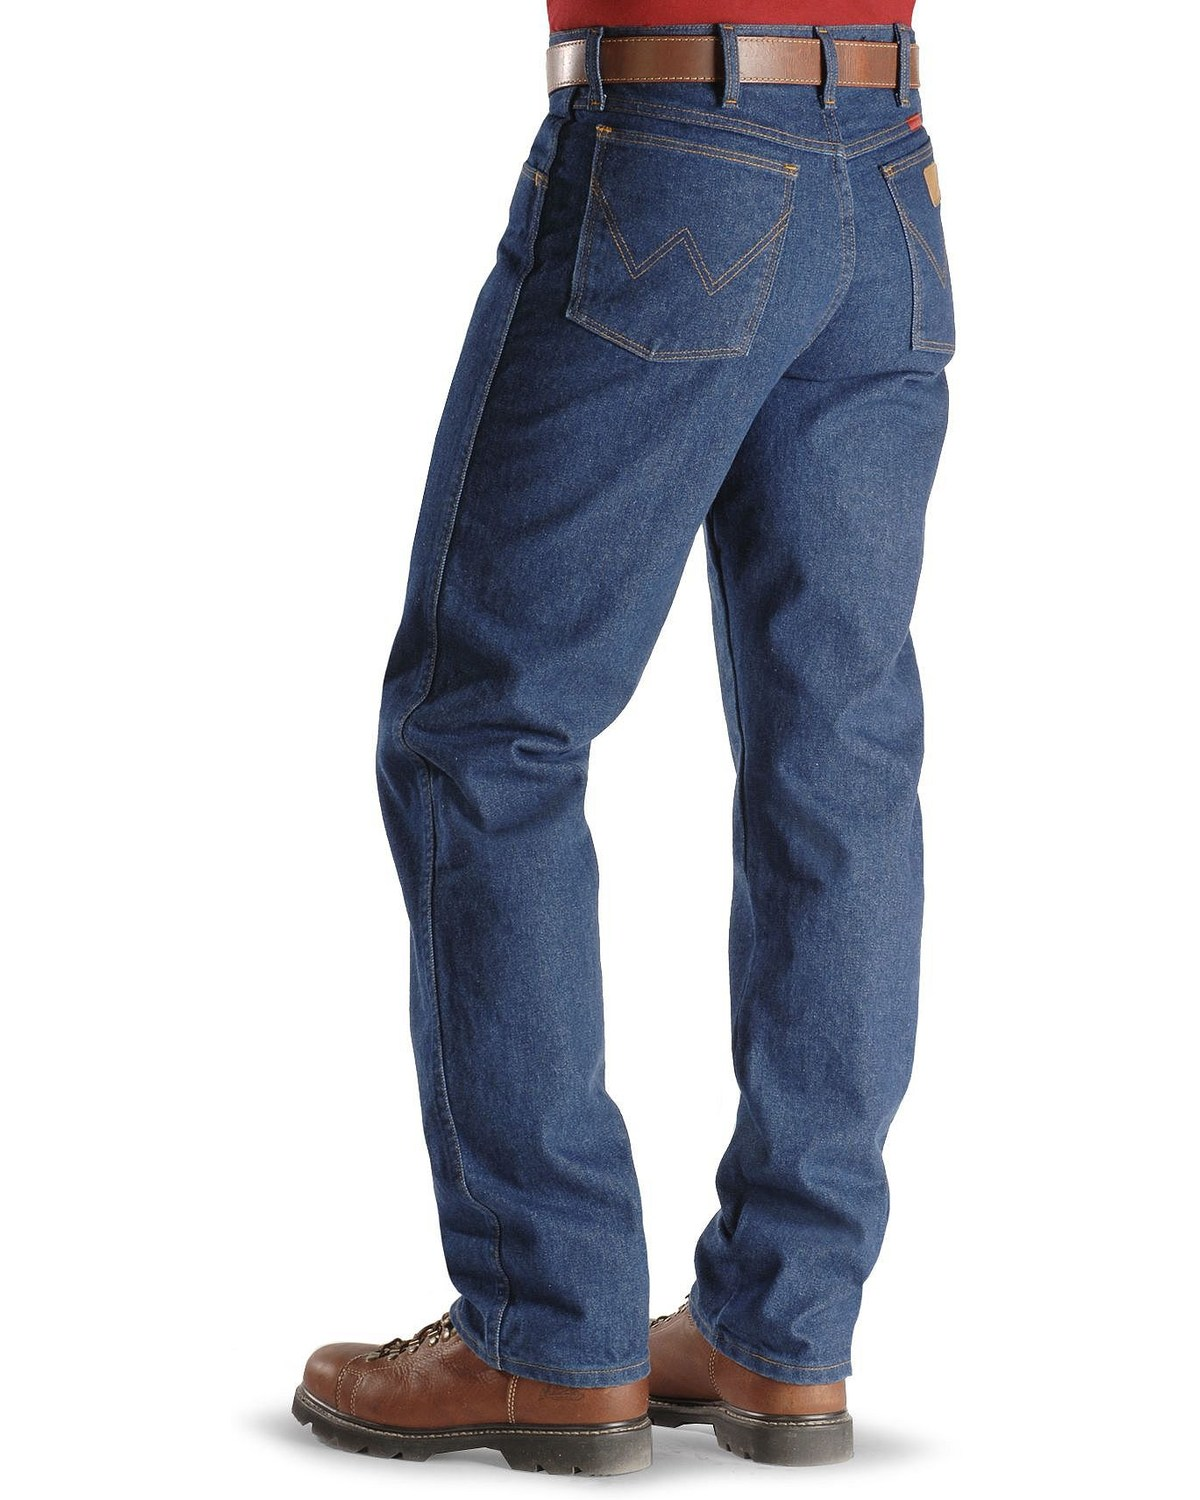 eb7fab4da1dc Wrangler Men s Relaxed Flame Resistant Jeans